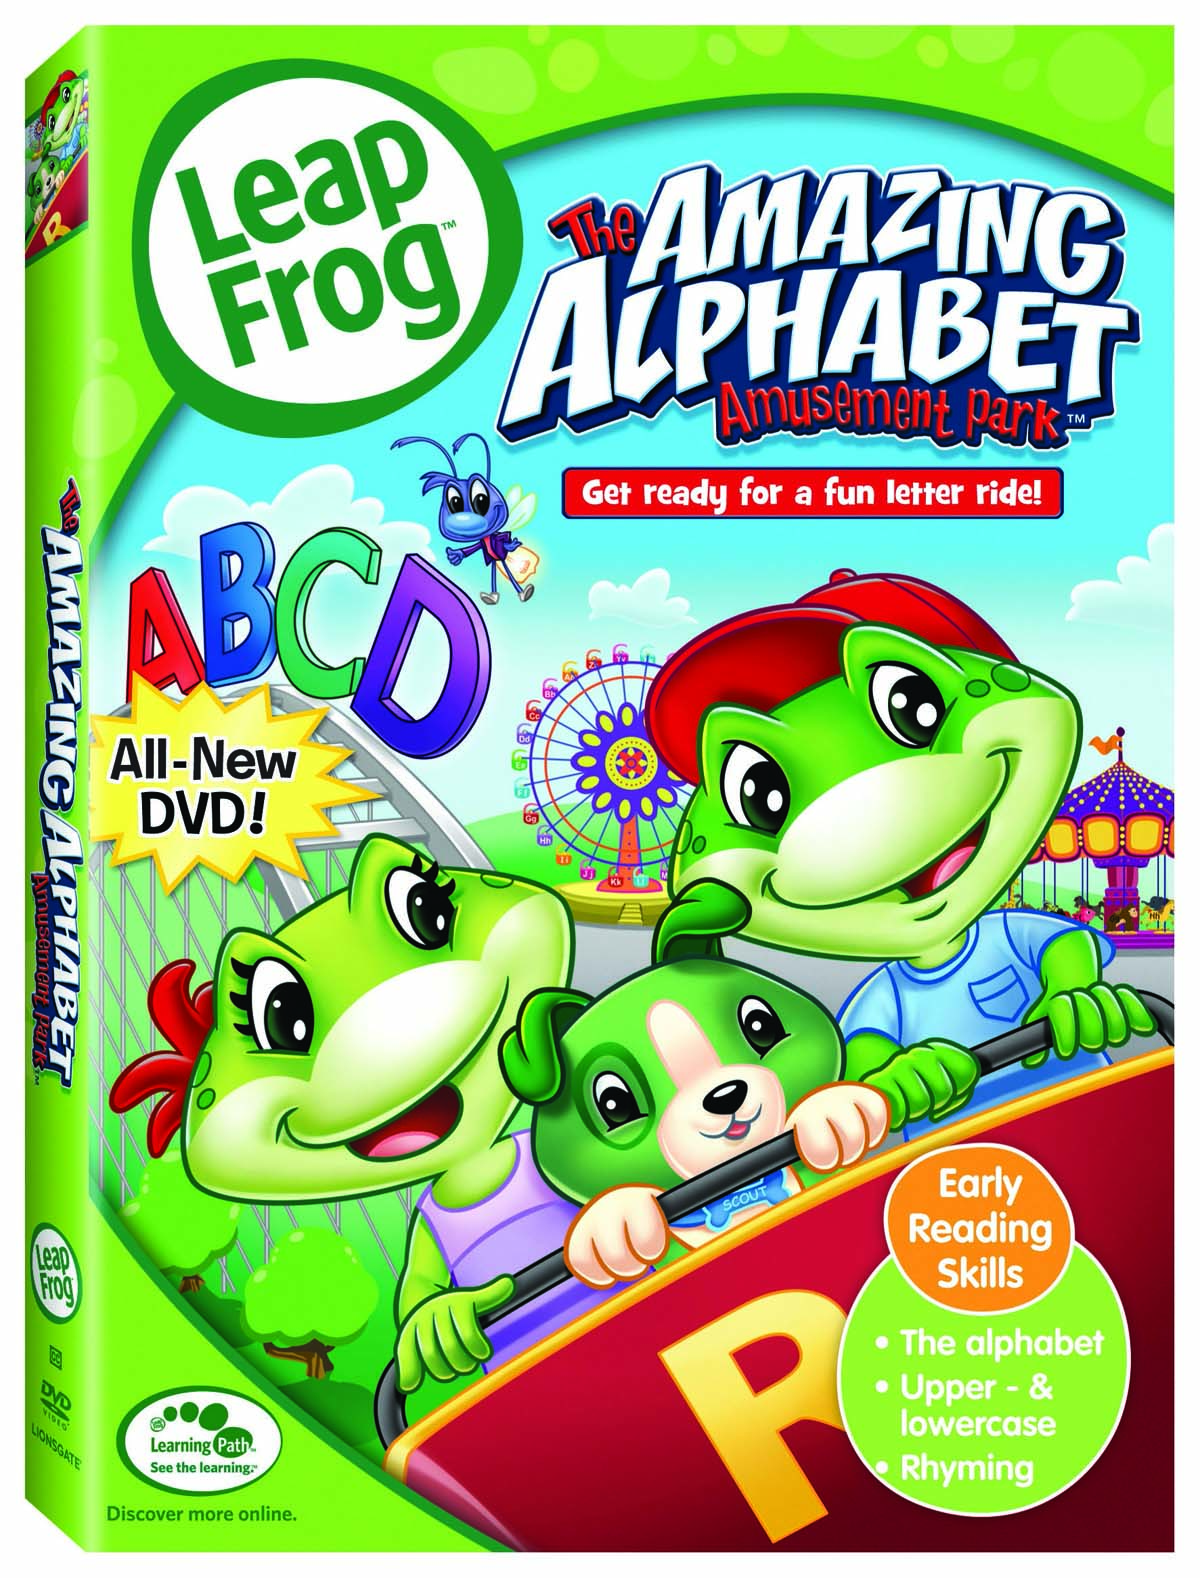 Letters m, n, o, p, q song from leapfrog: the amazing alphabet.